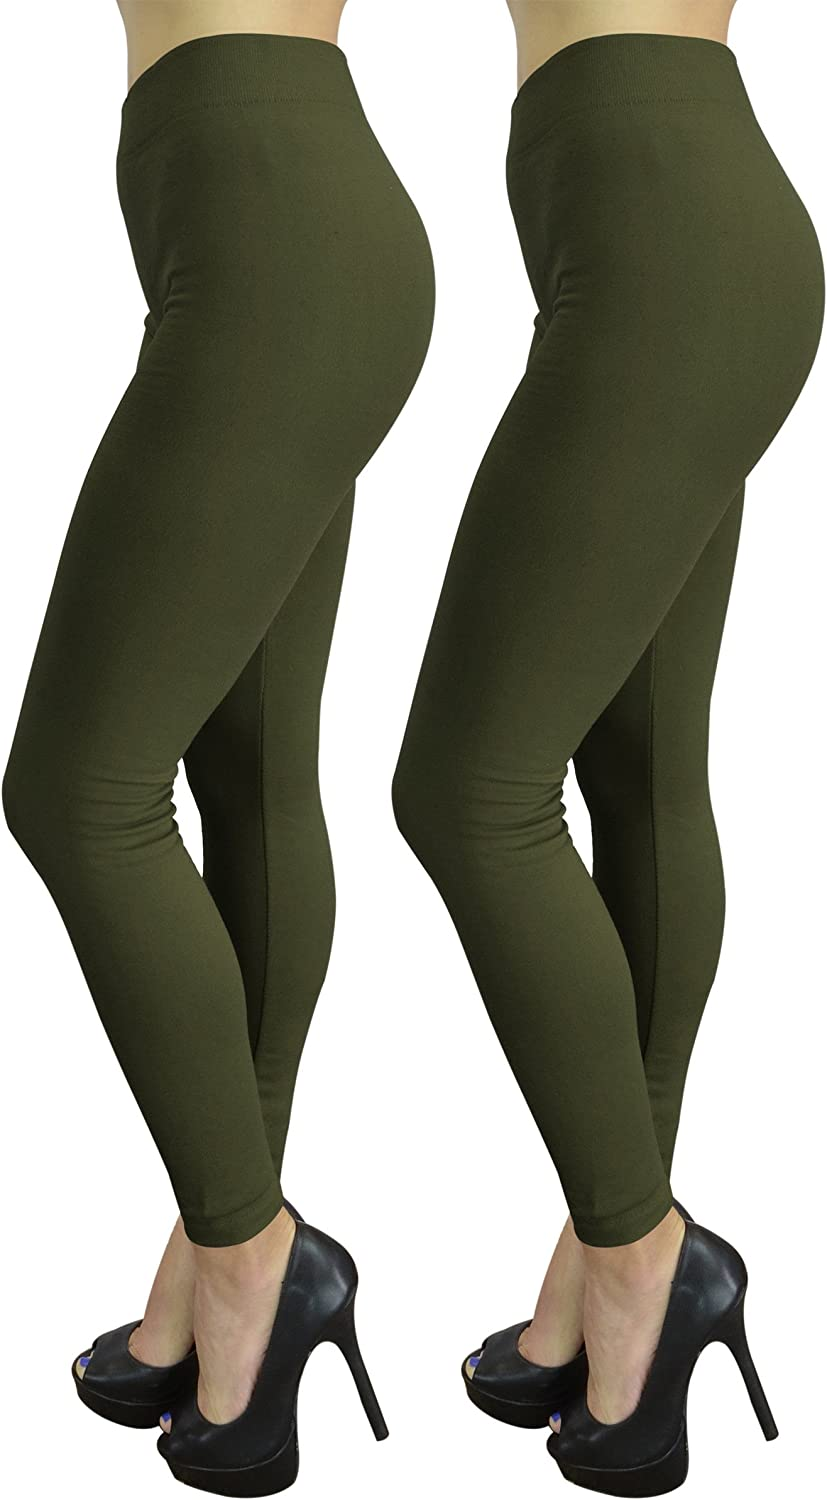 Stretchy Solid Color Yoga Pants by Belle Donne Women/'s Seamless Leggings